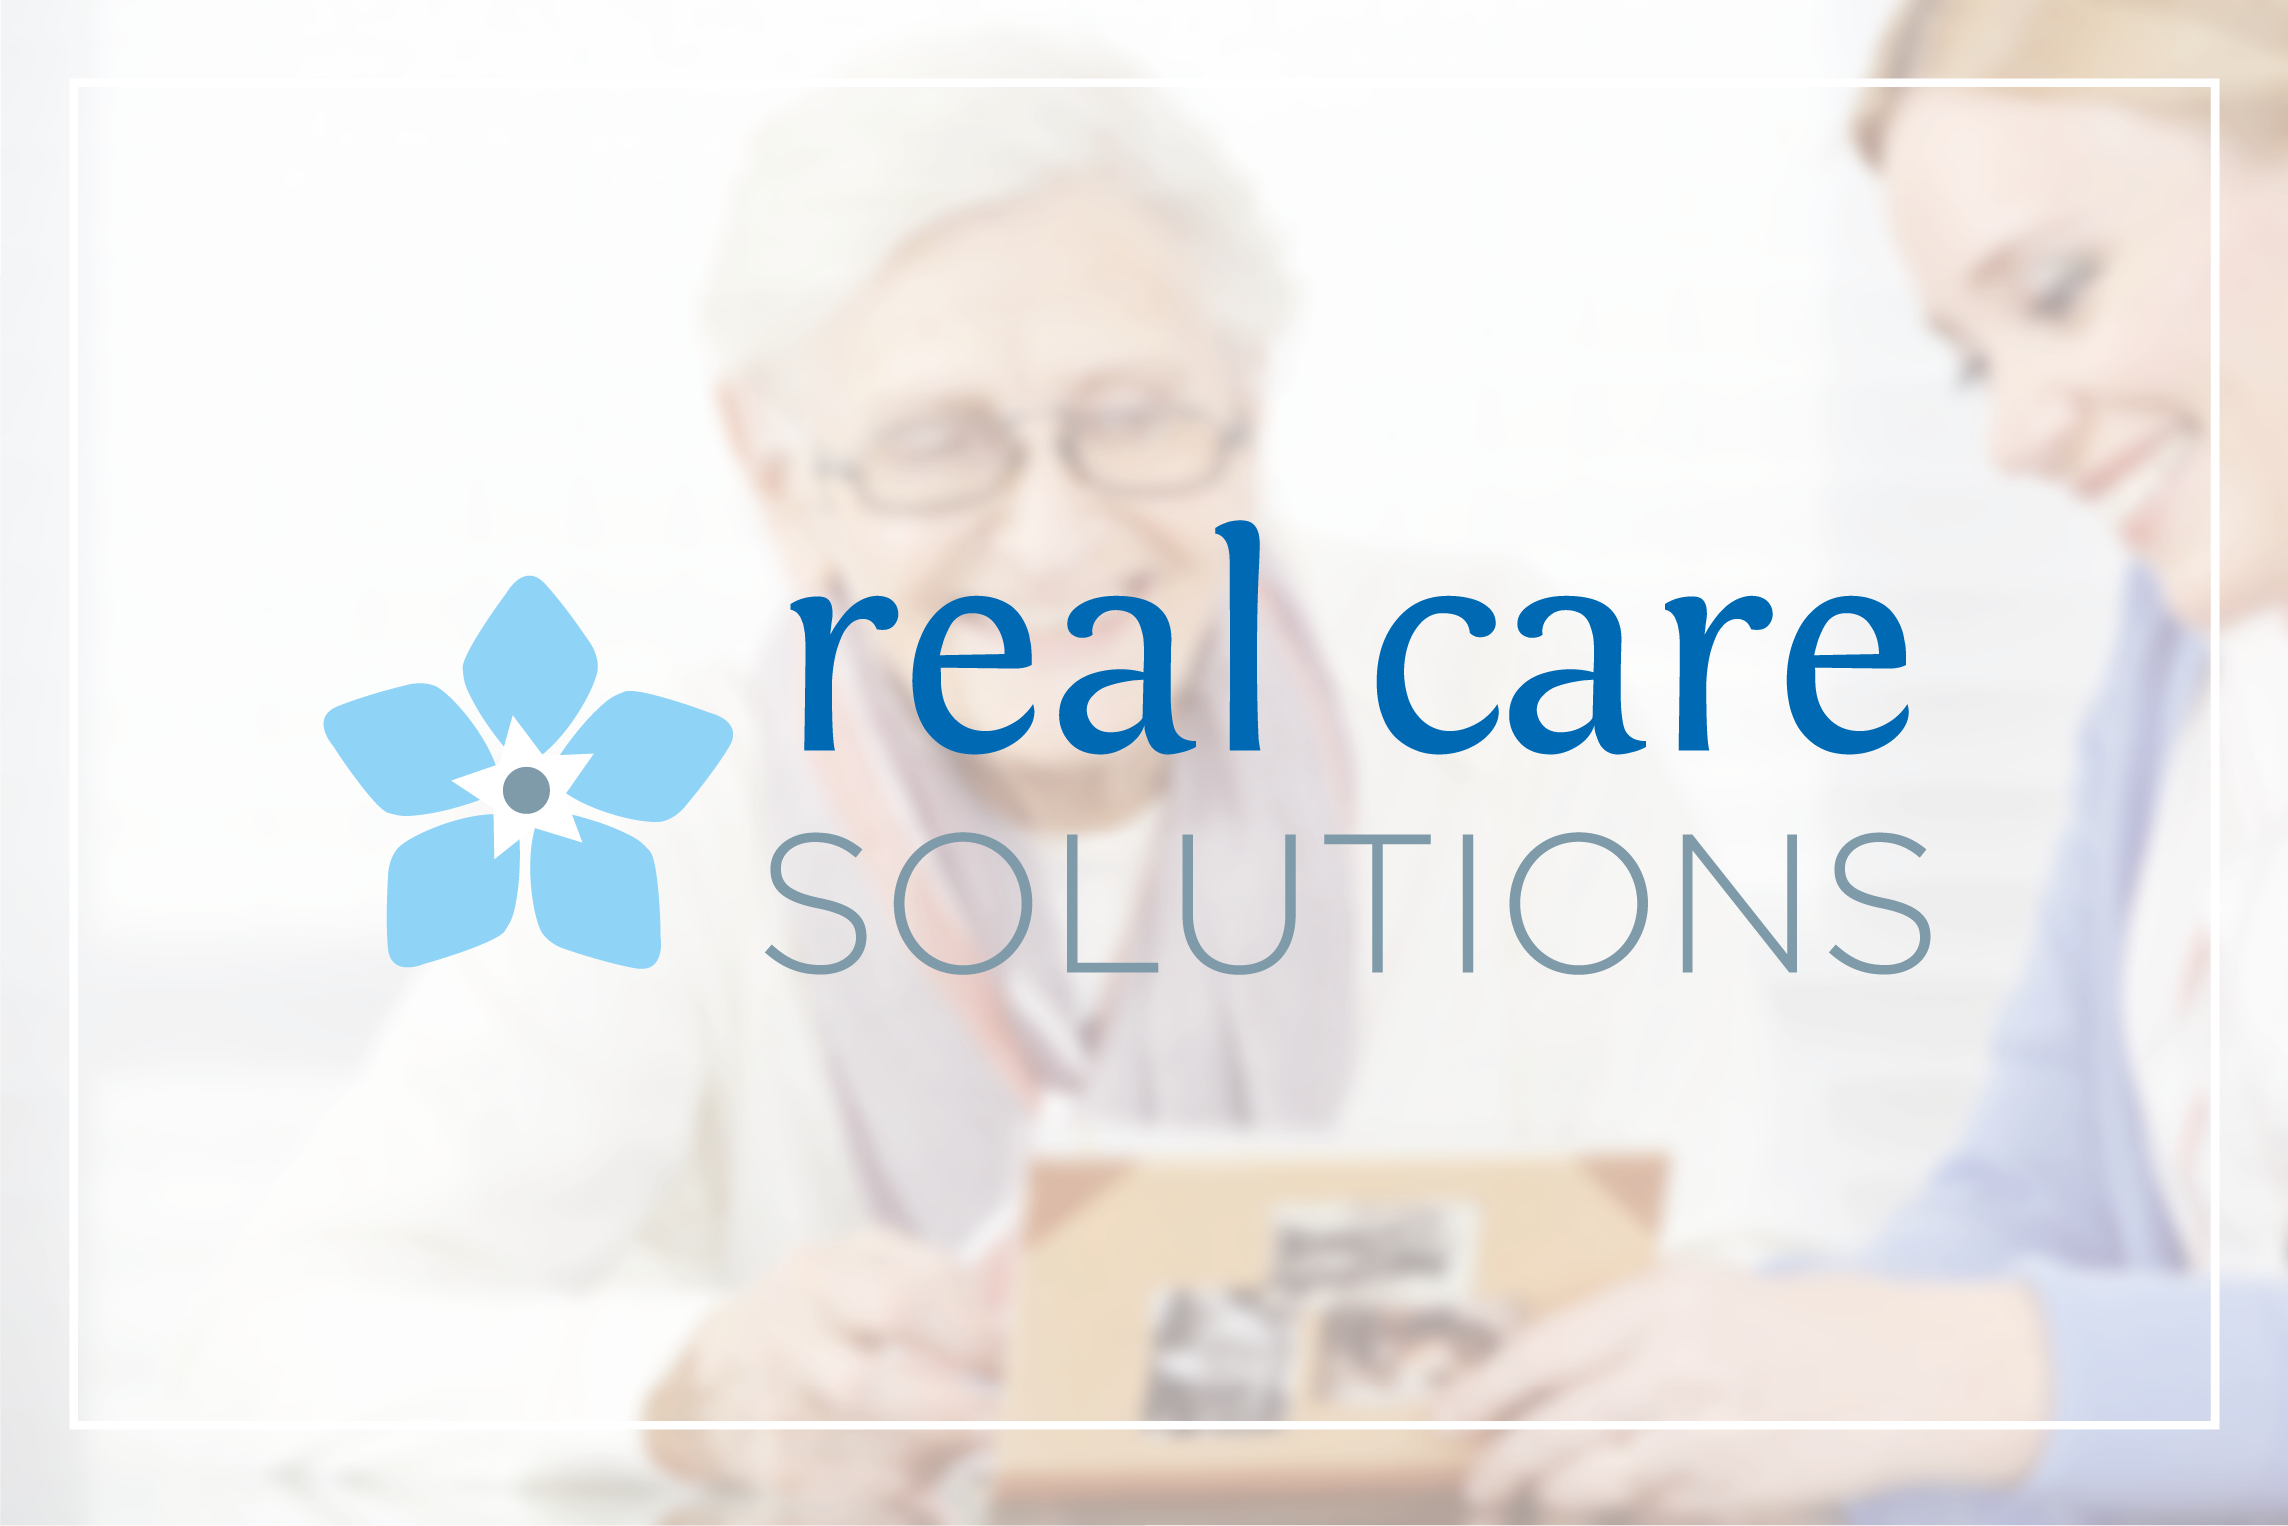 Real Care Solutions